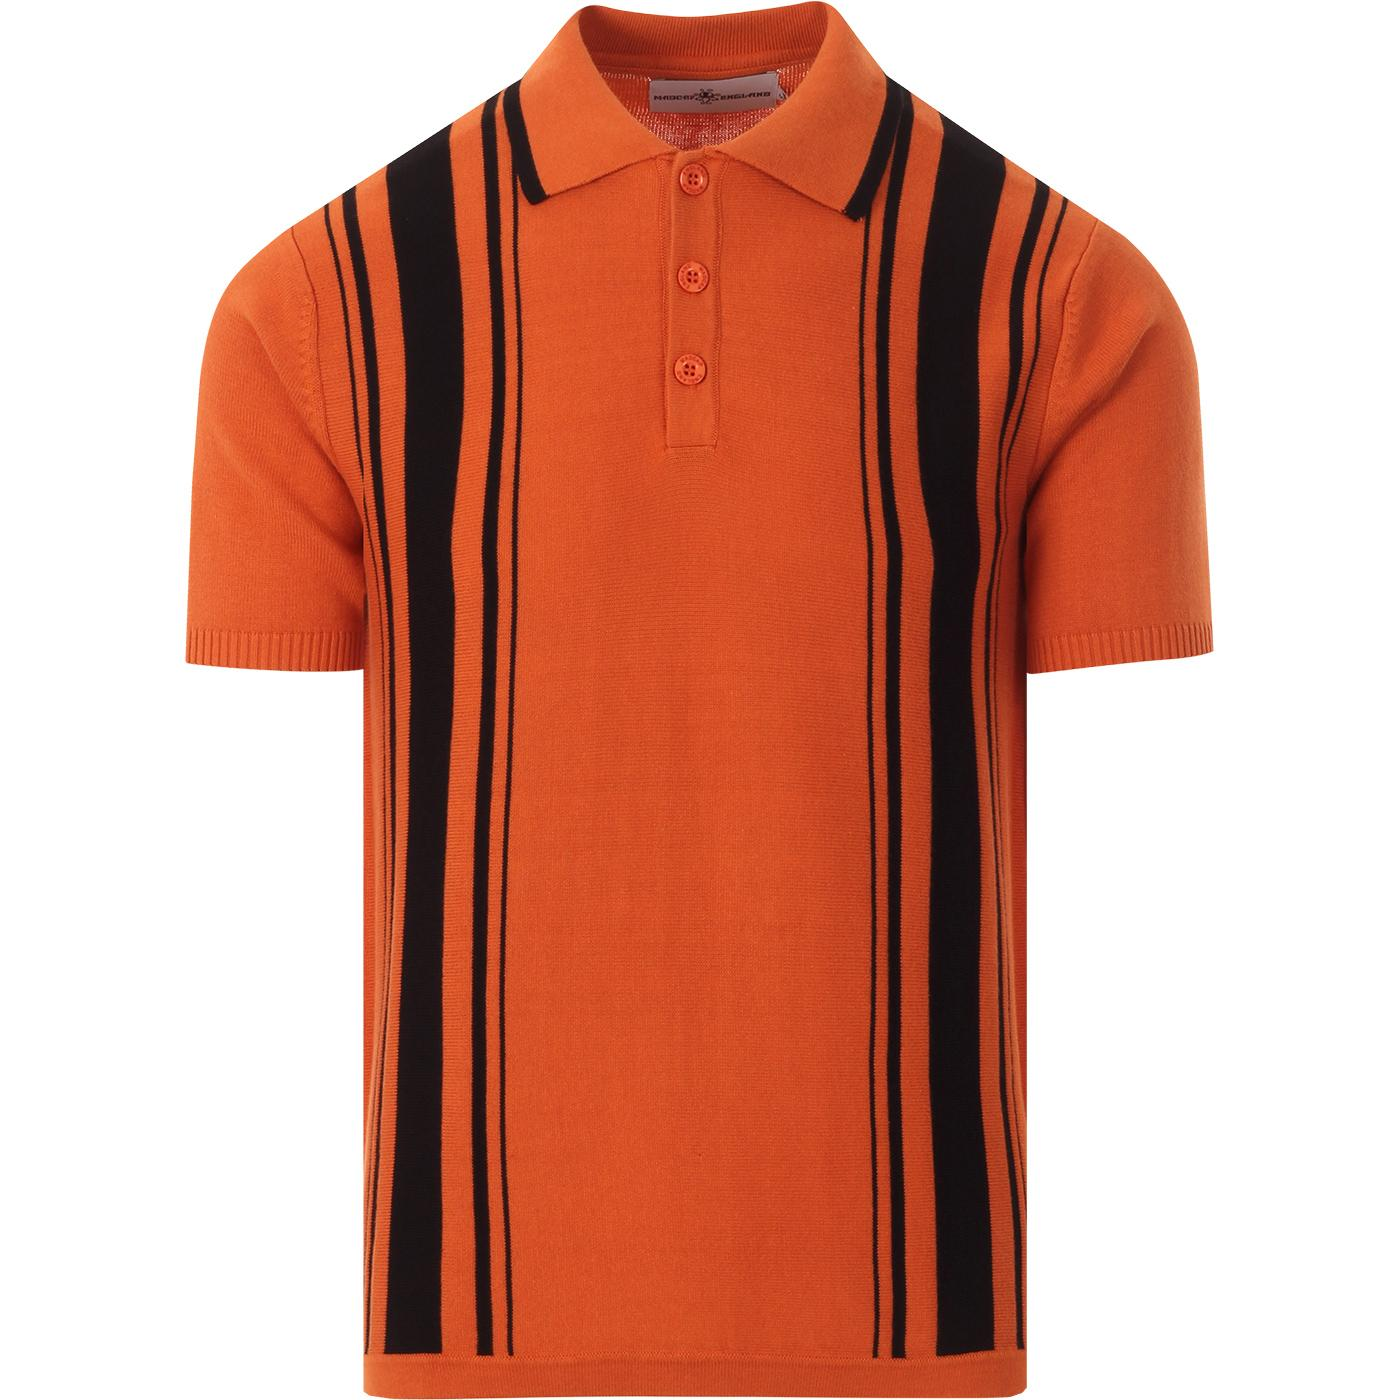 madcap england mens aftermath knitted polo tshirt rust orange